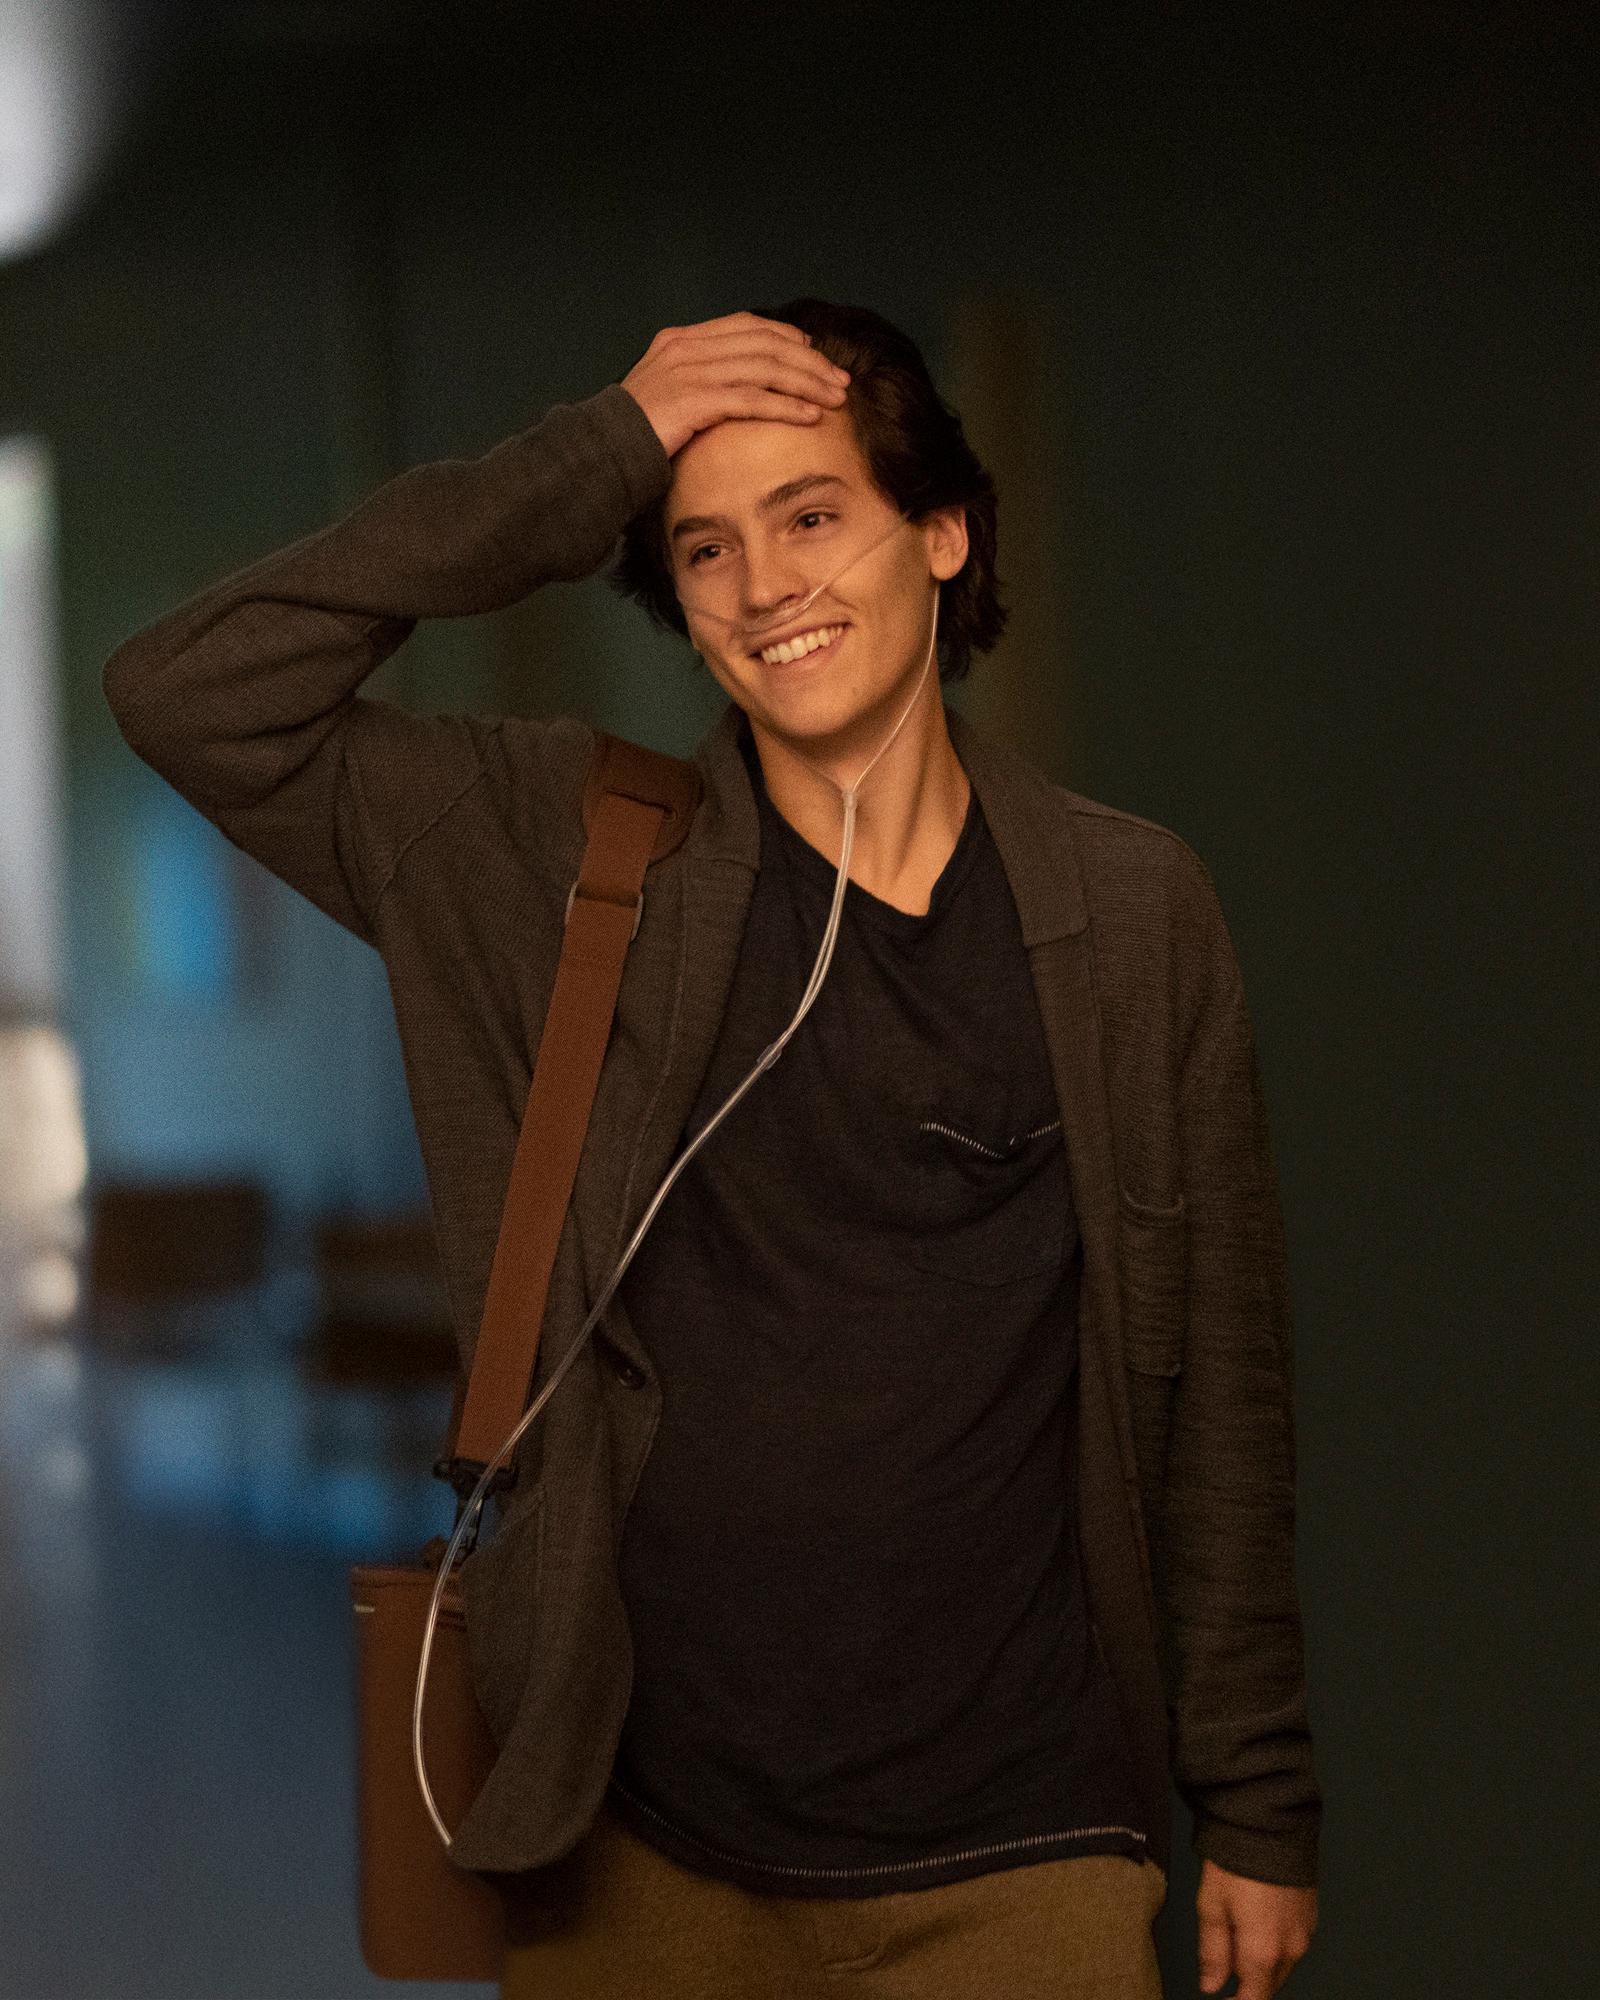 Cole Sprouse in FIVE FEET APART to be released by CBS FILMS and LIONSGATE.